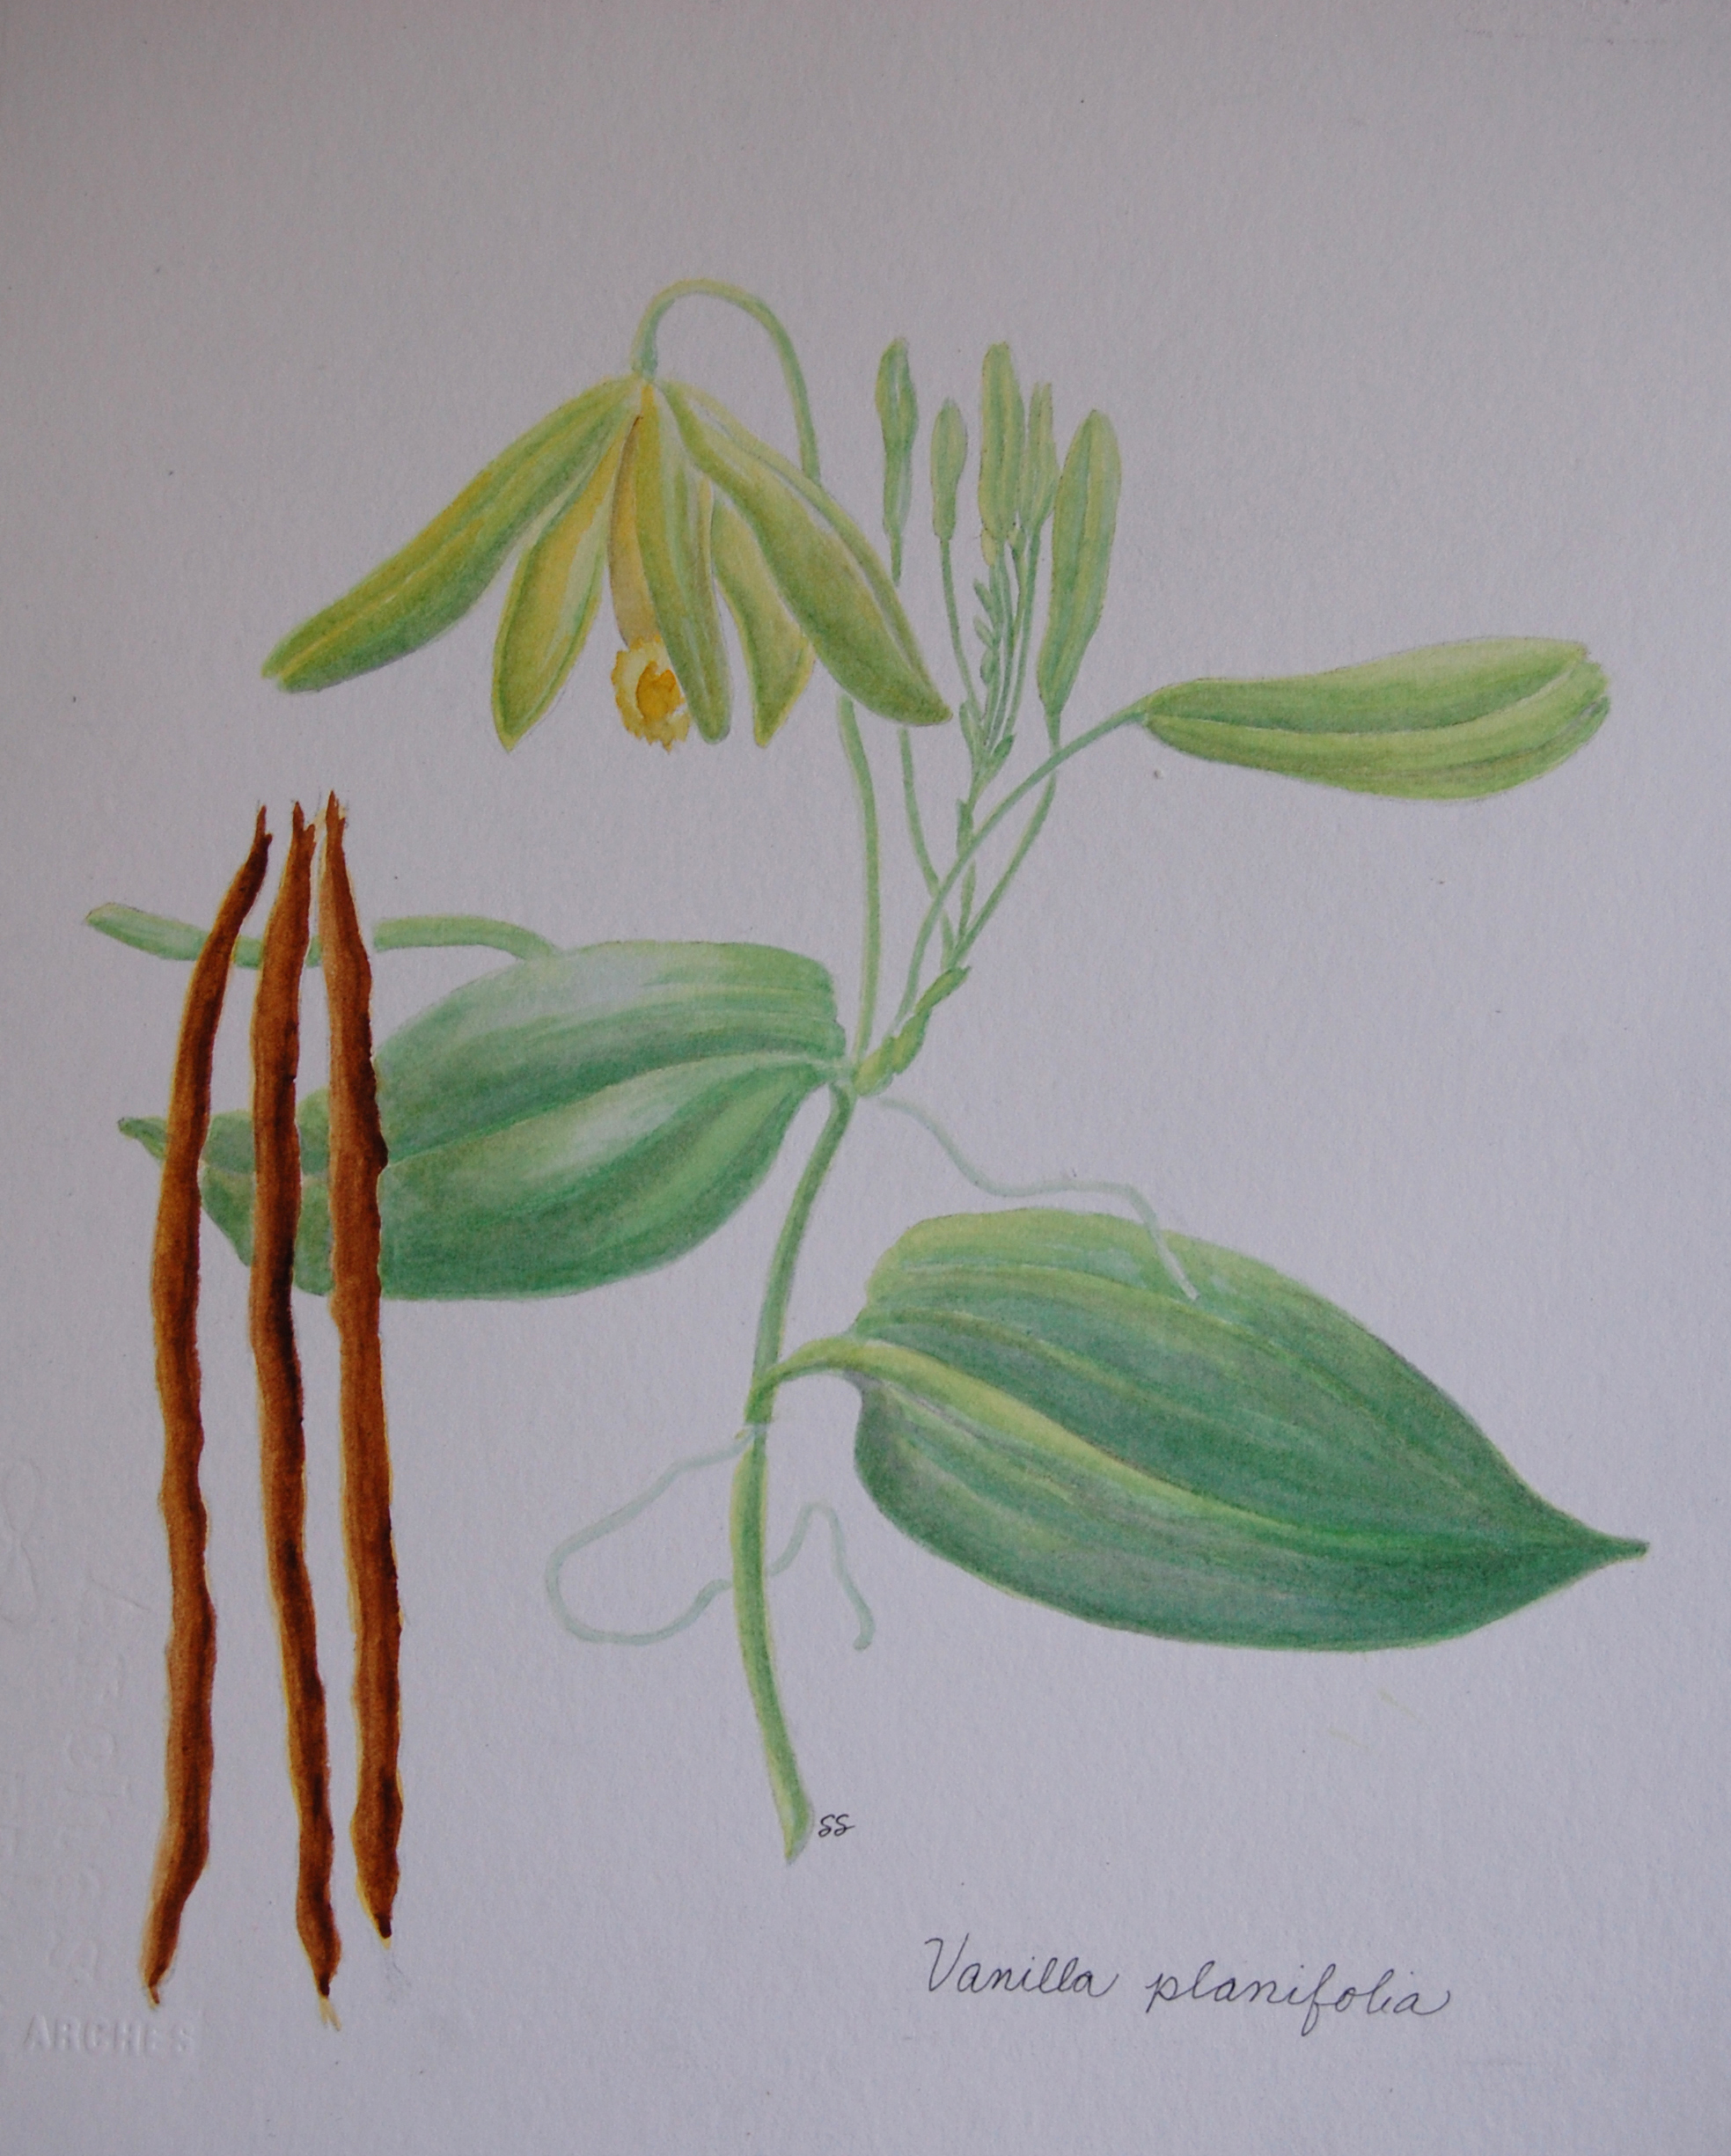 Did you Know That Vanilla Comes From an Orchid?